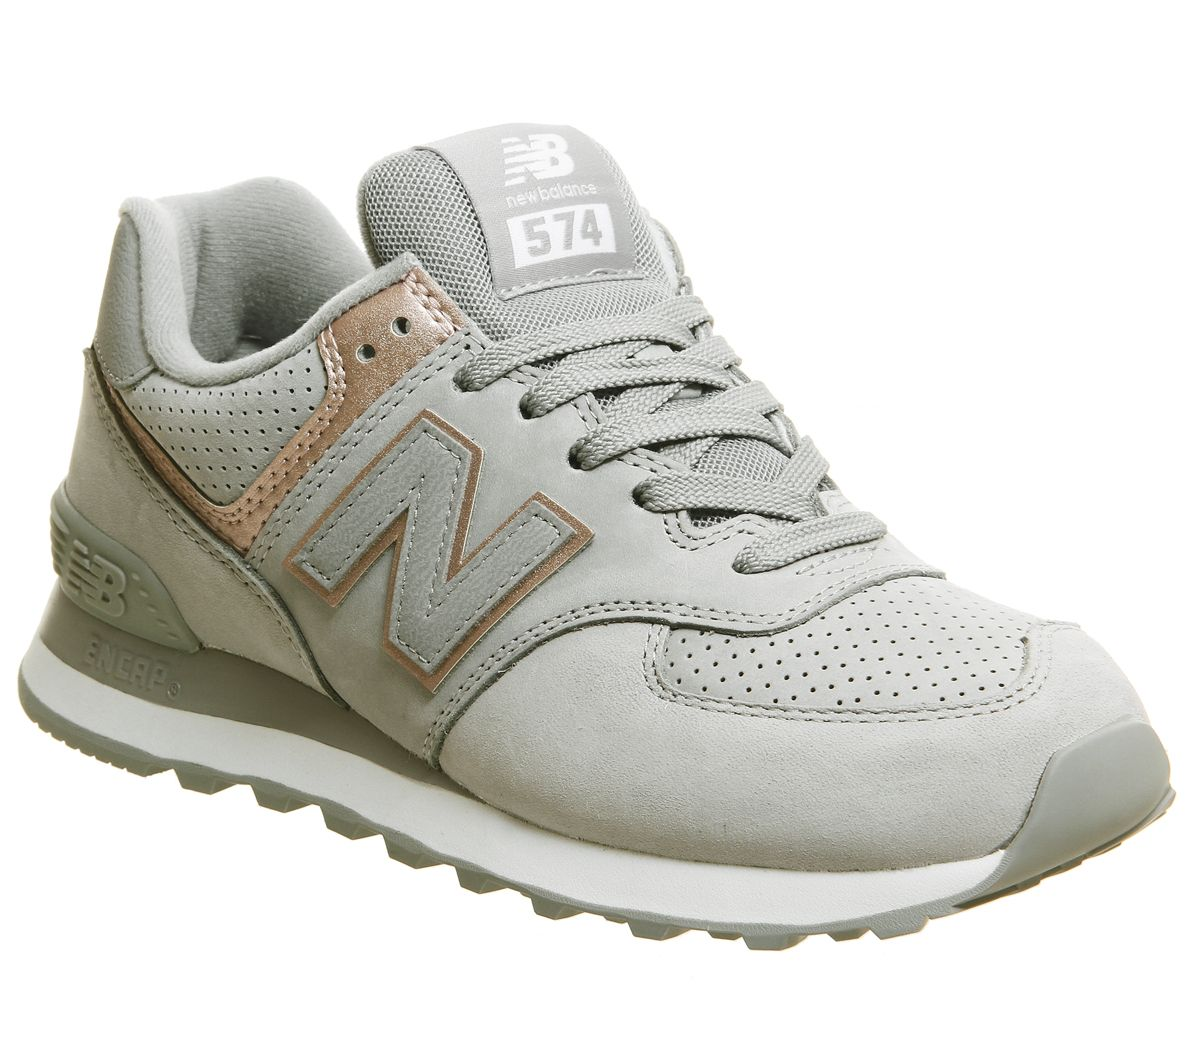 3c5586668098f New Balance 574 Trainers Seed White Rose Gold - Hers trainers